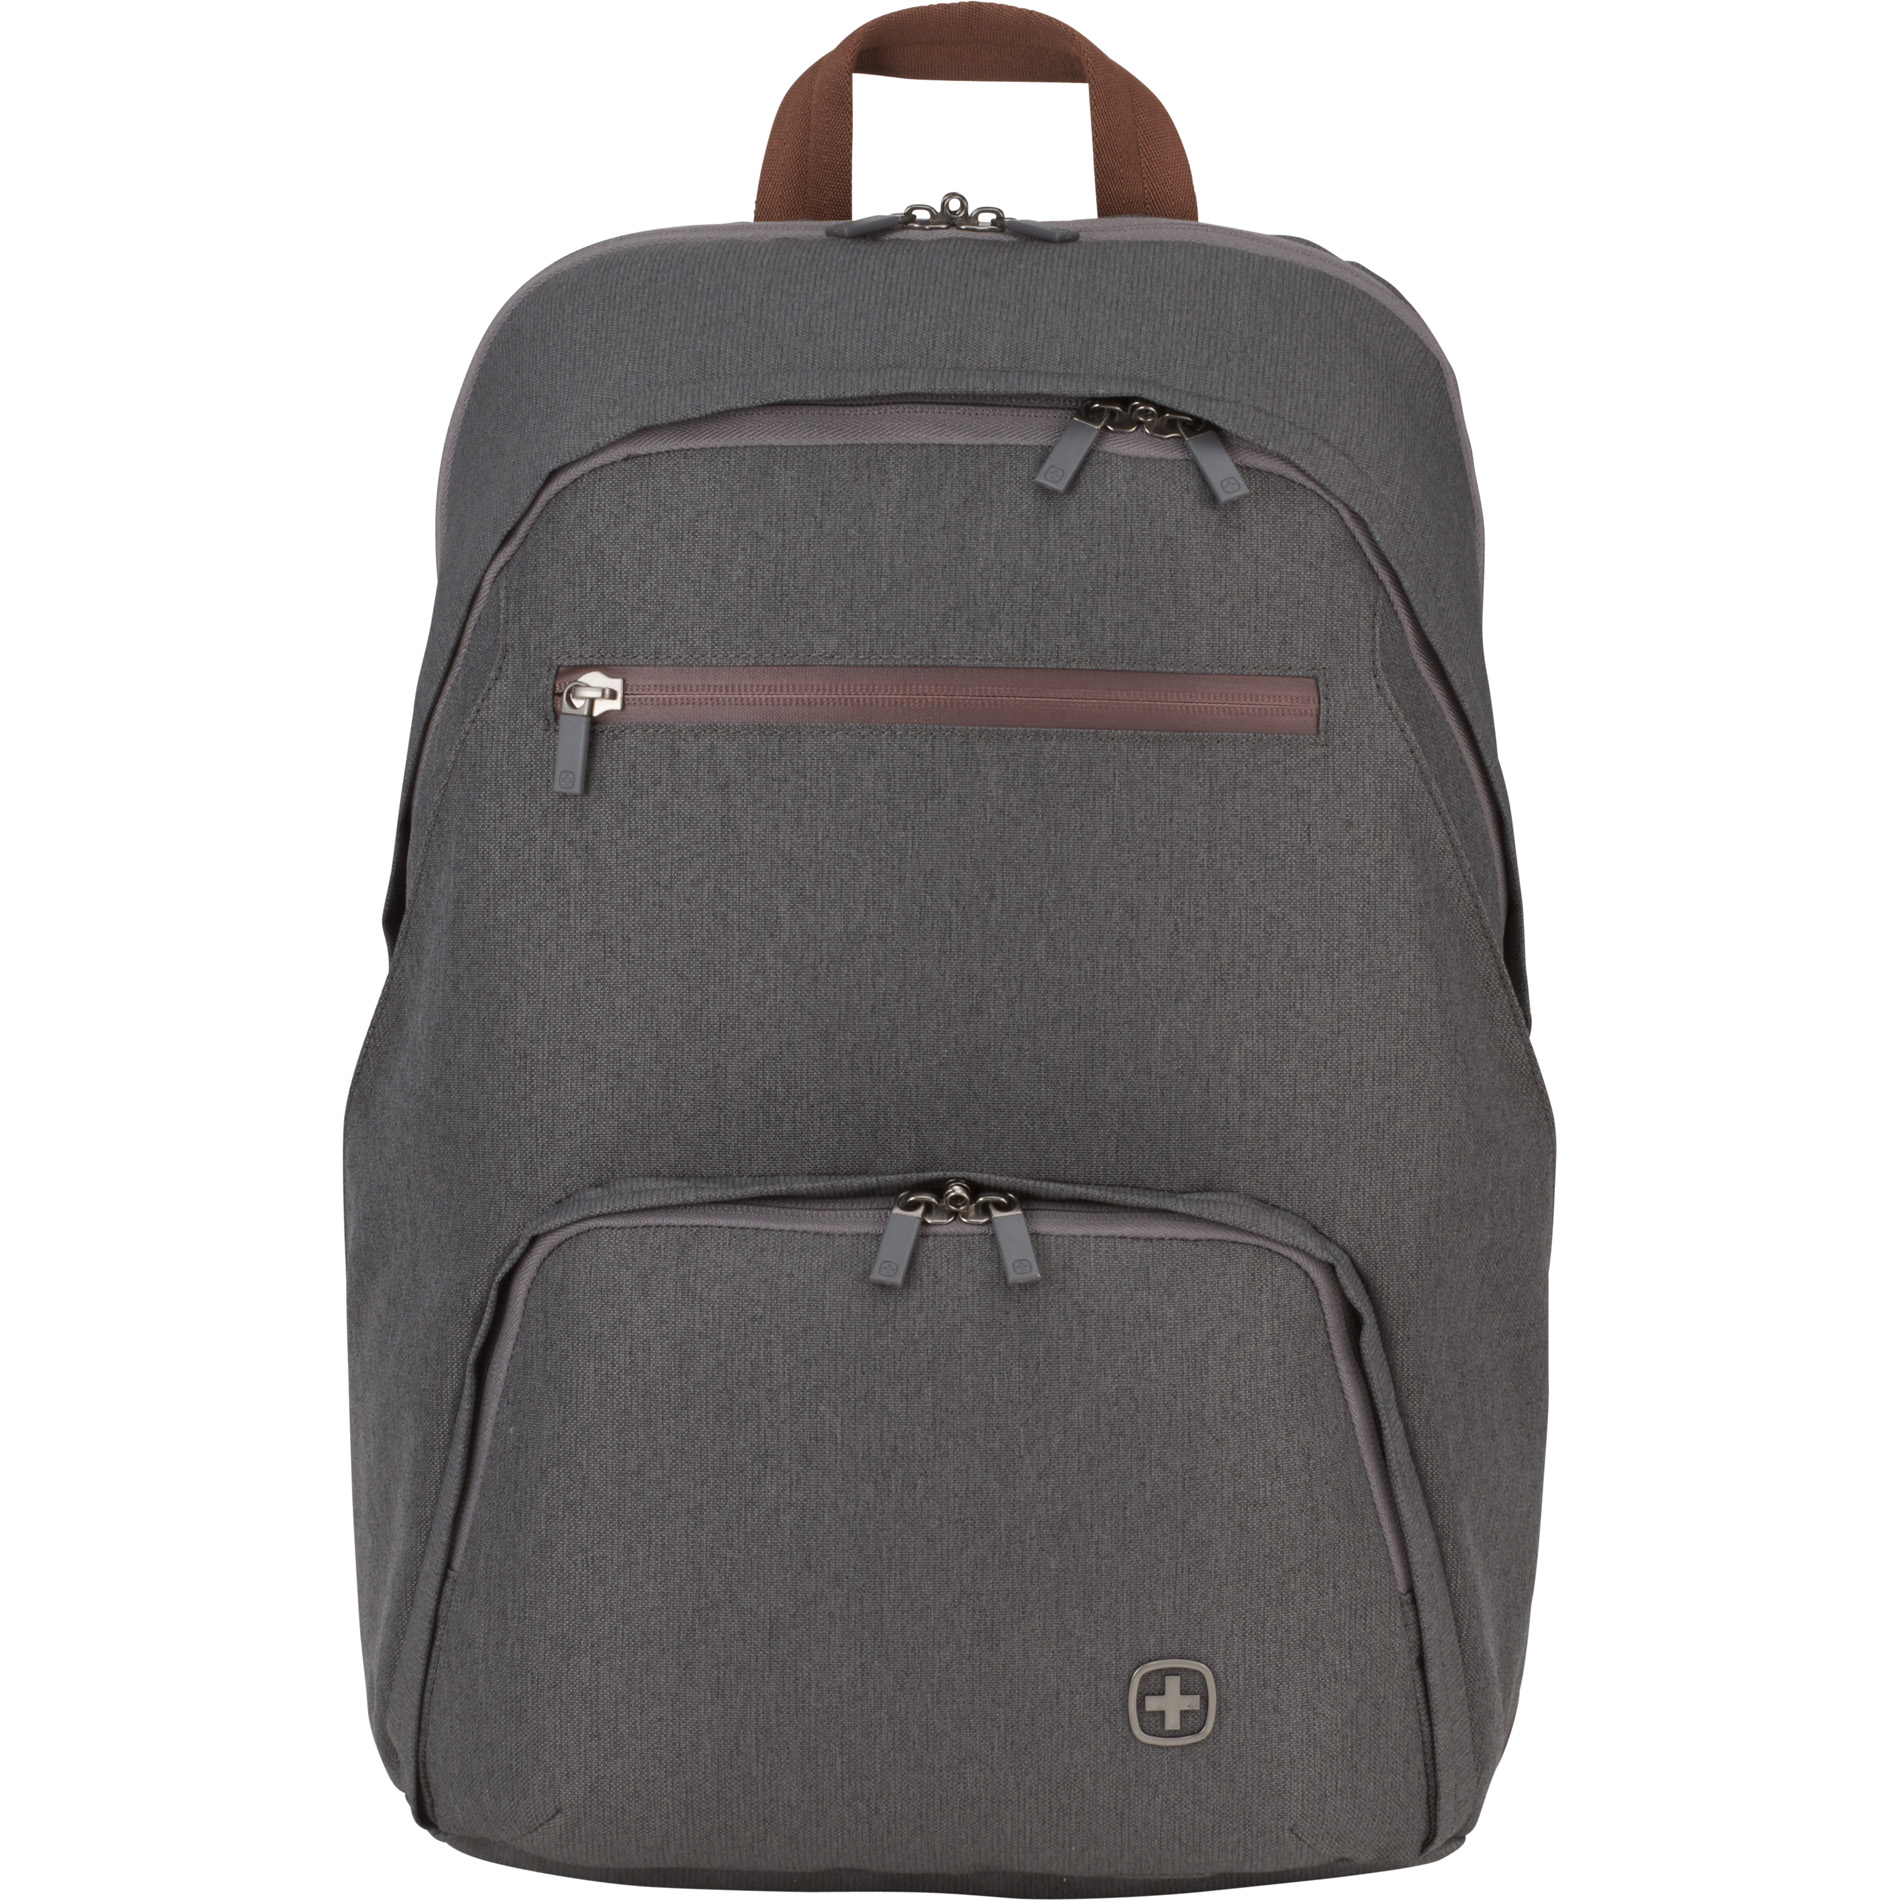 "Wenger 9550-49 - Captial 15"" Computer Backpack"